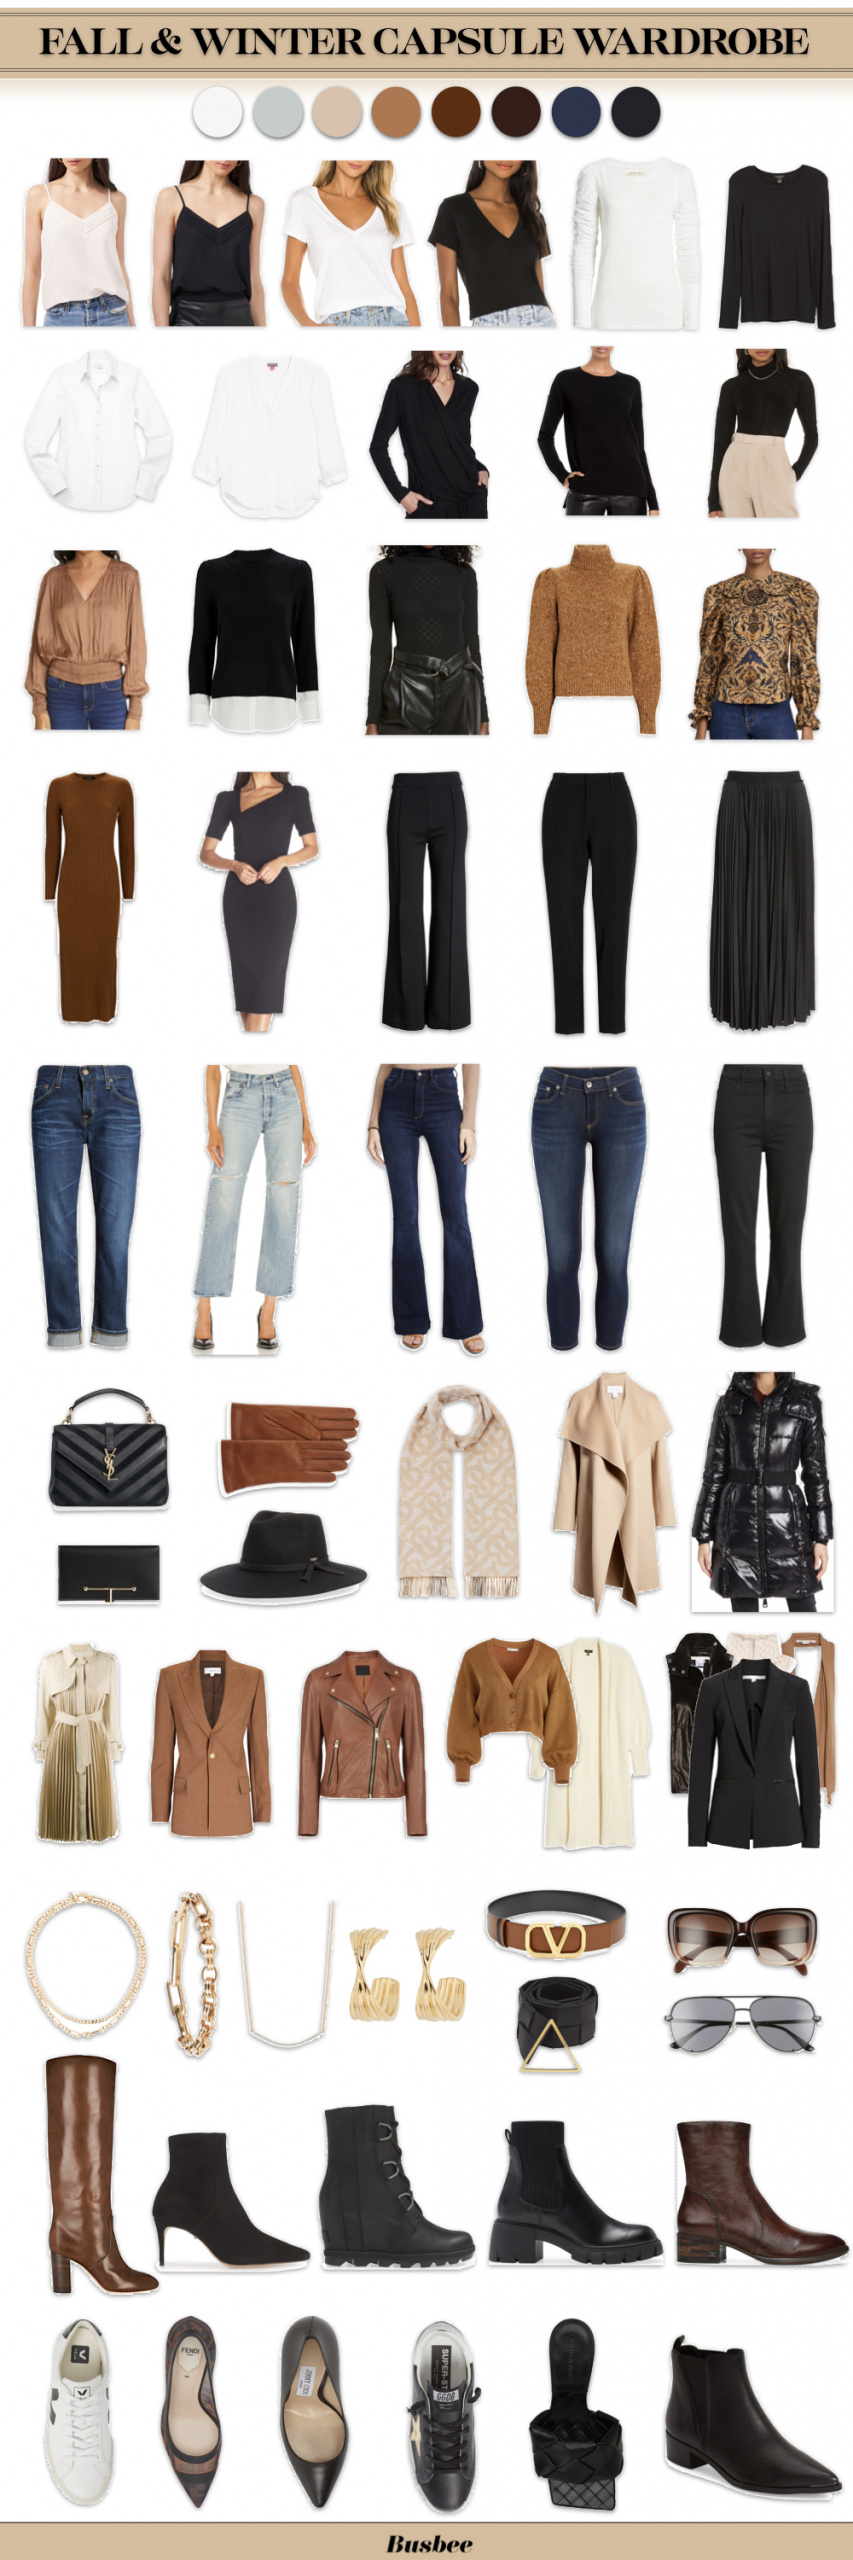 capsule wardobre, fall wardrobe absics, winter wardrobe basics, must have wardrobe basics, erin busbee, what to buy for fall, fall outfits, winter outfits, wardrobe basics